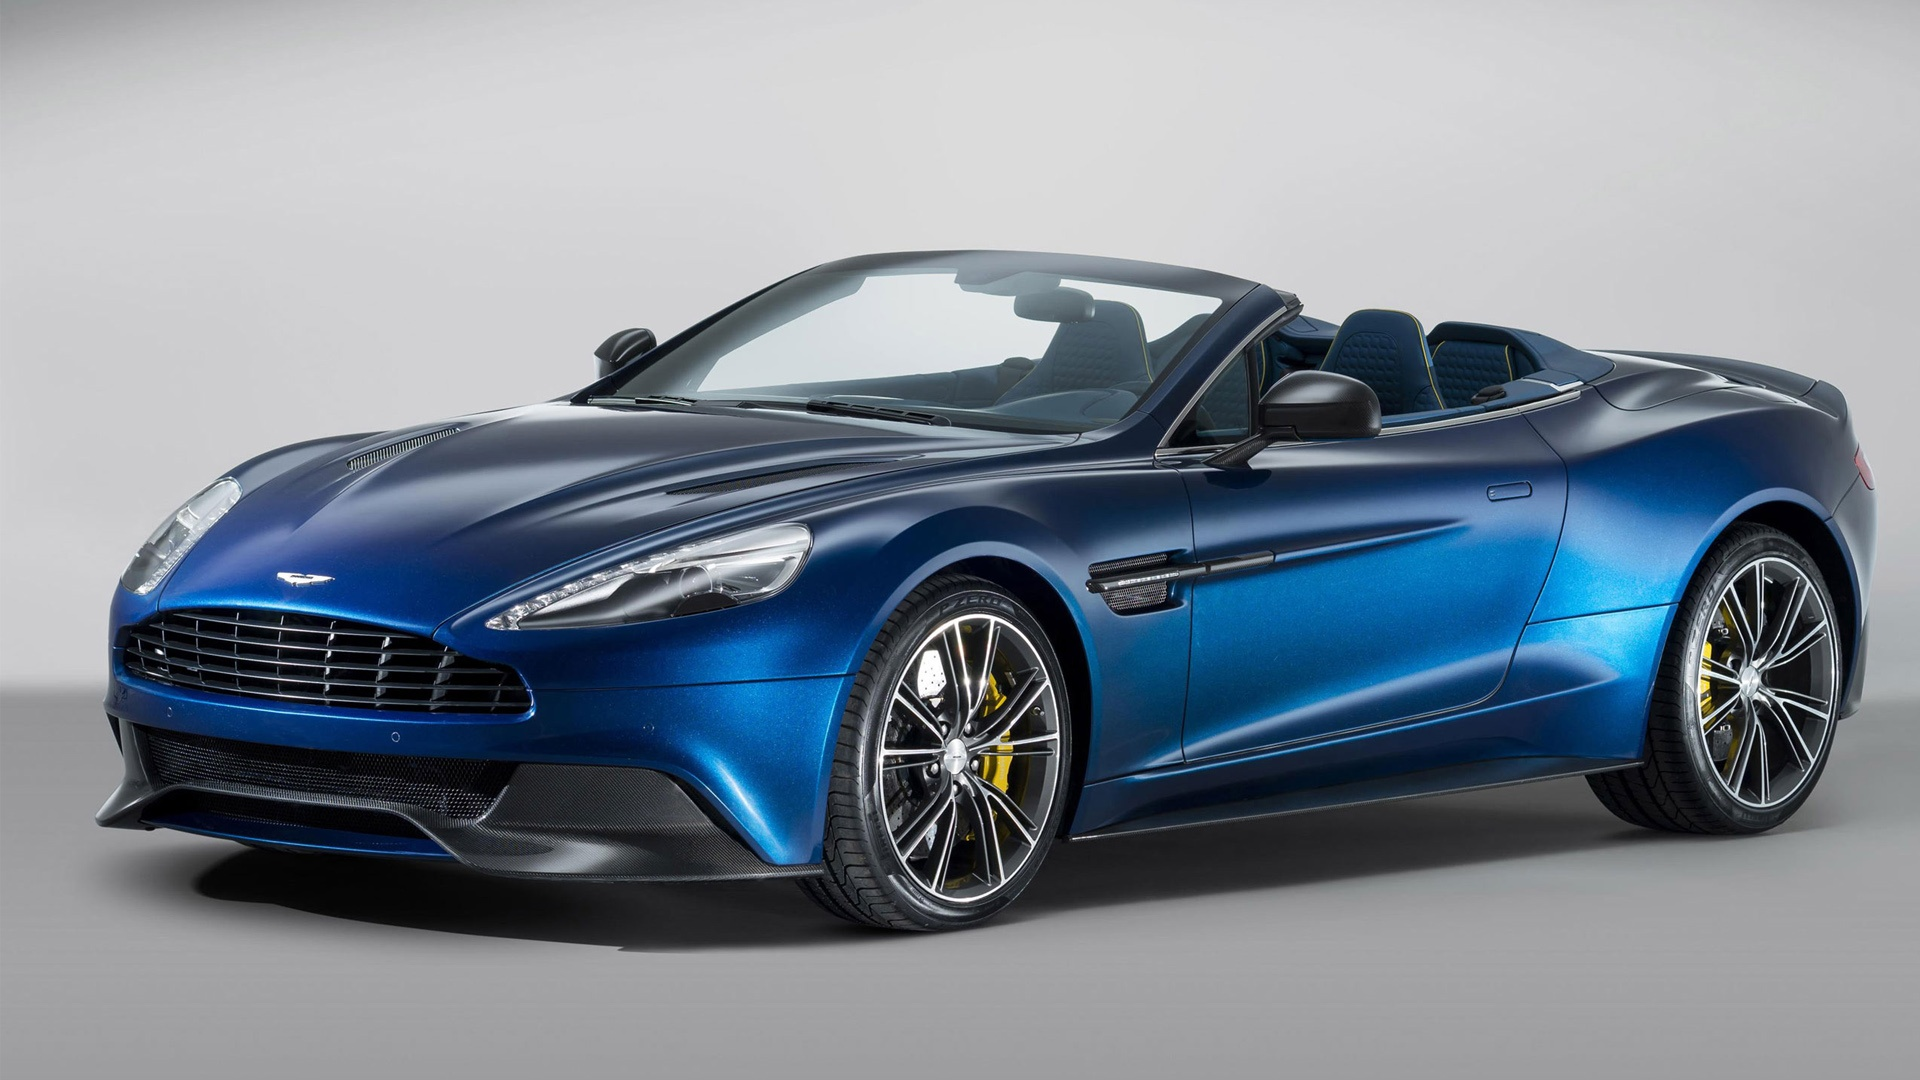 2014 Aston Martin Vanquish Wallpaper in 1920x1080 Resolution 1920x1080